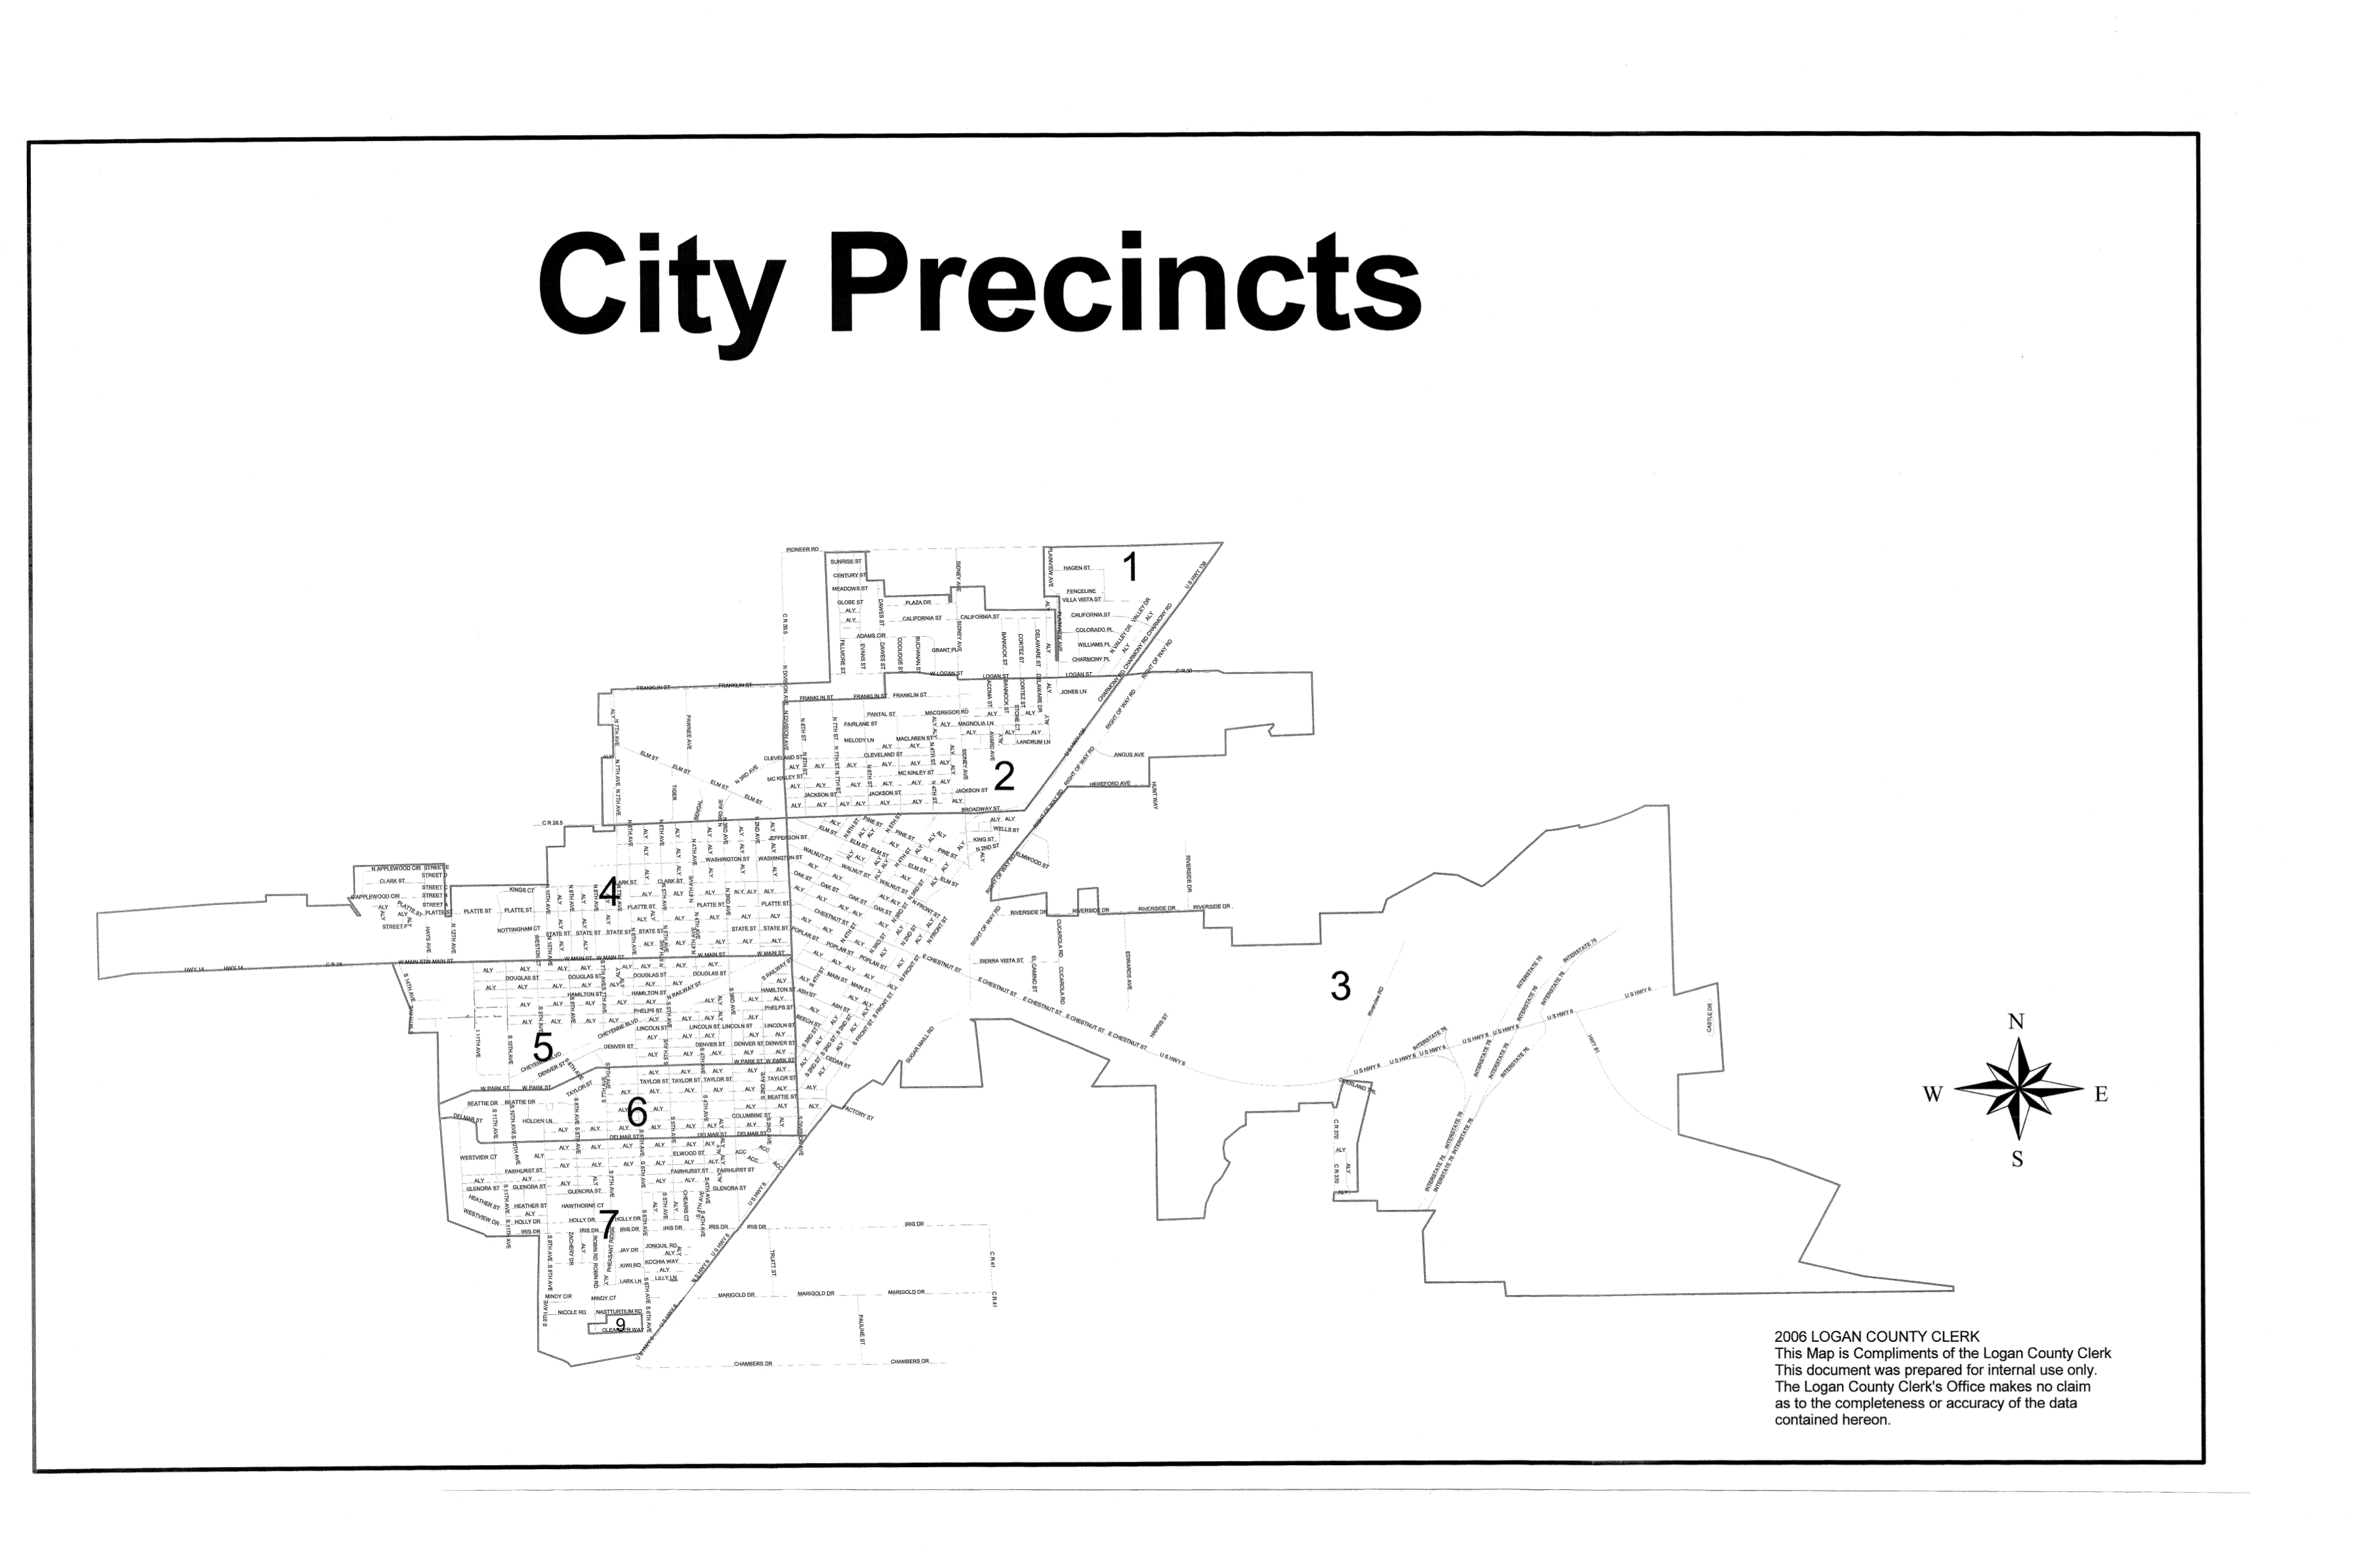 2018 Logan County Precincts in the City